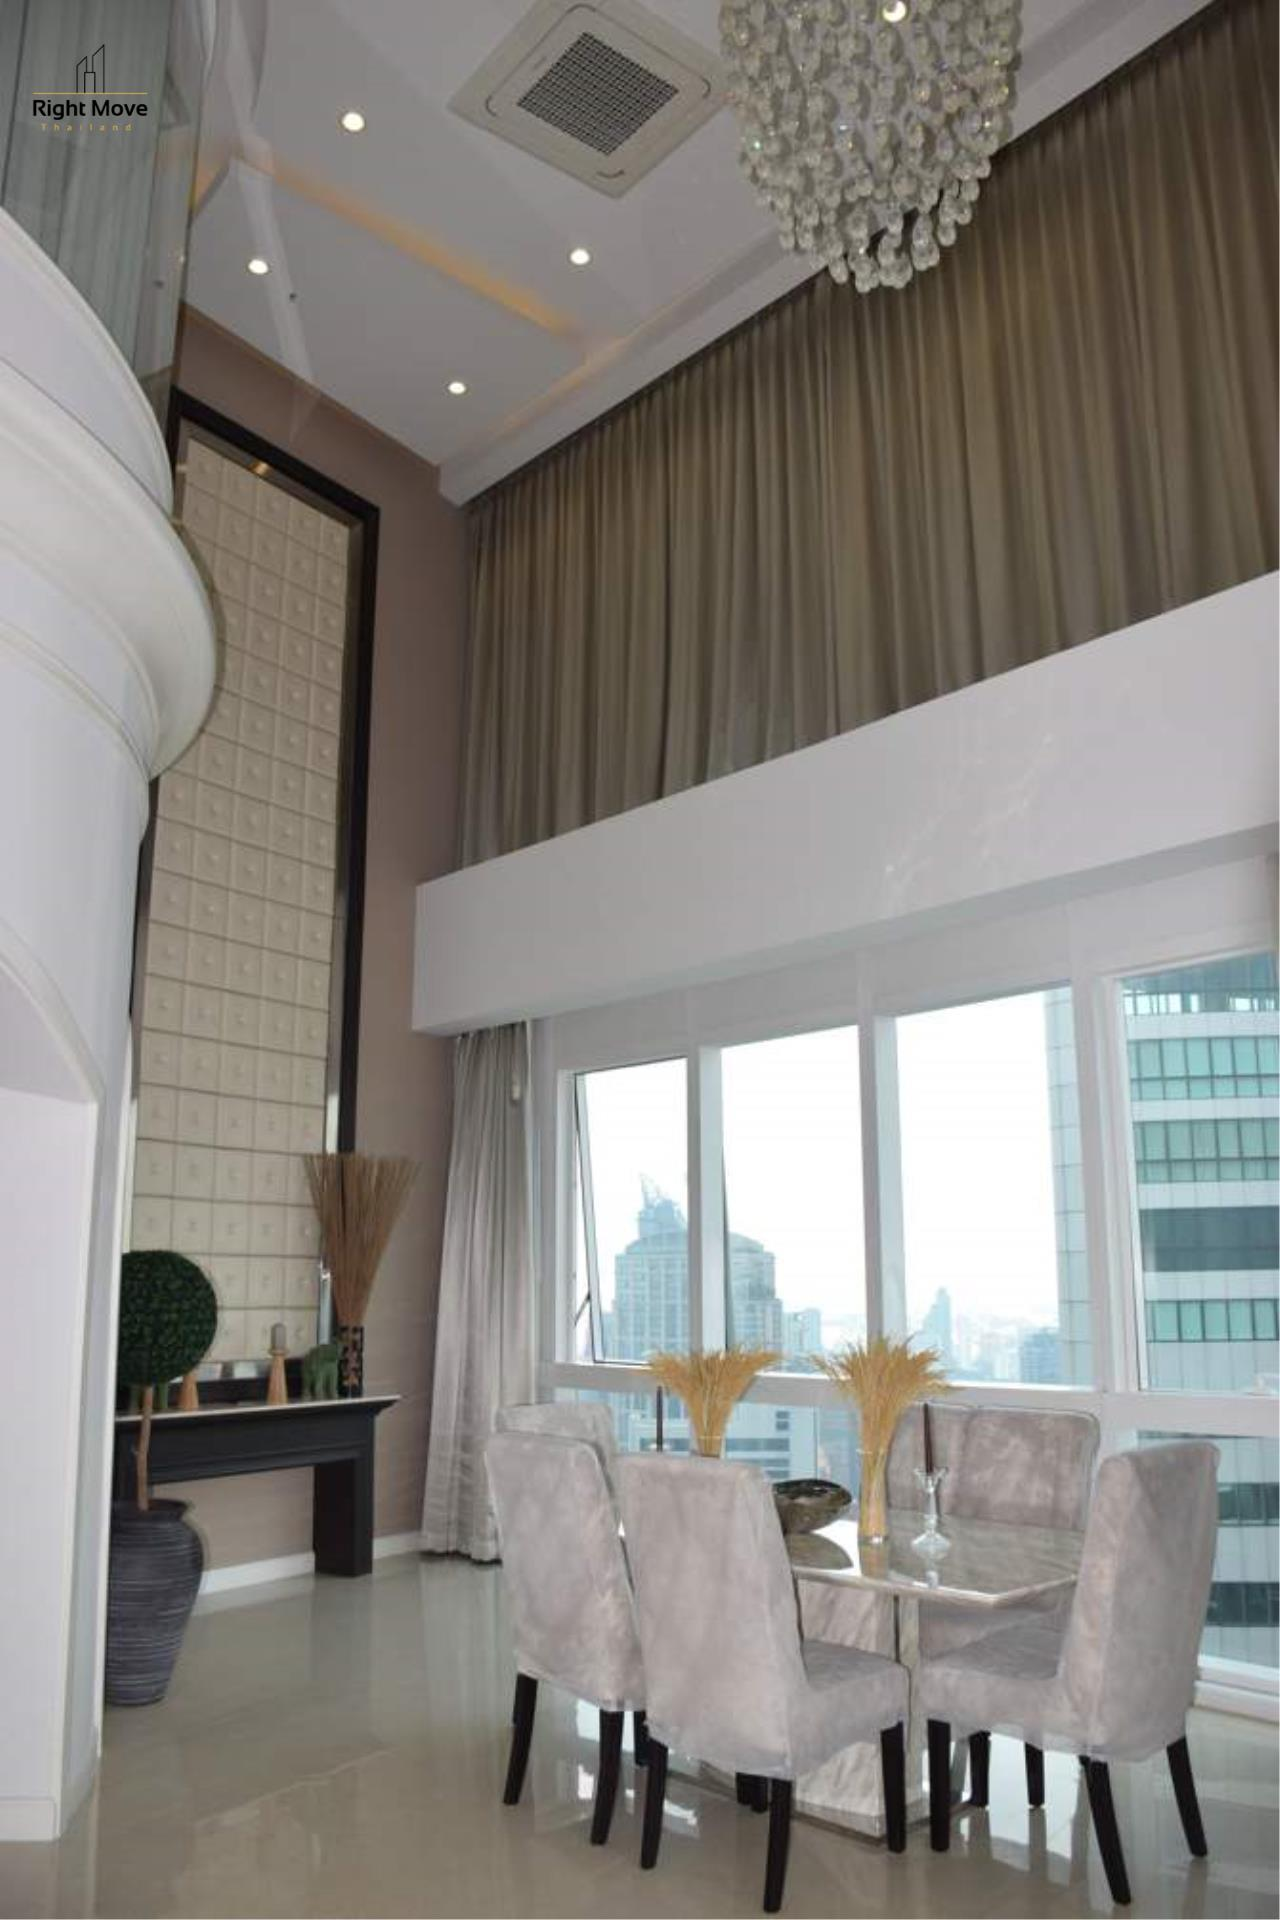 Right Move Thailand Agency's CA4297 Penthouse Duplex Millennium Residence For Rent - 250,000 THB - 316.85 Sqm 13